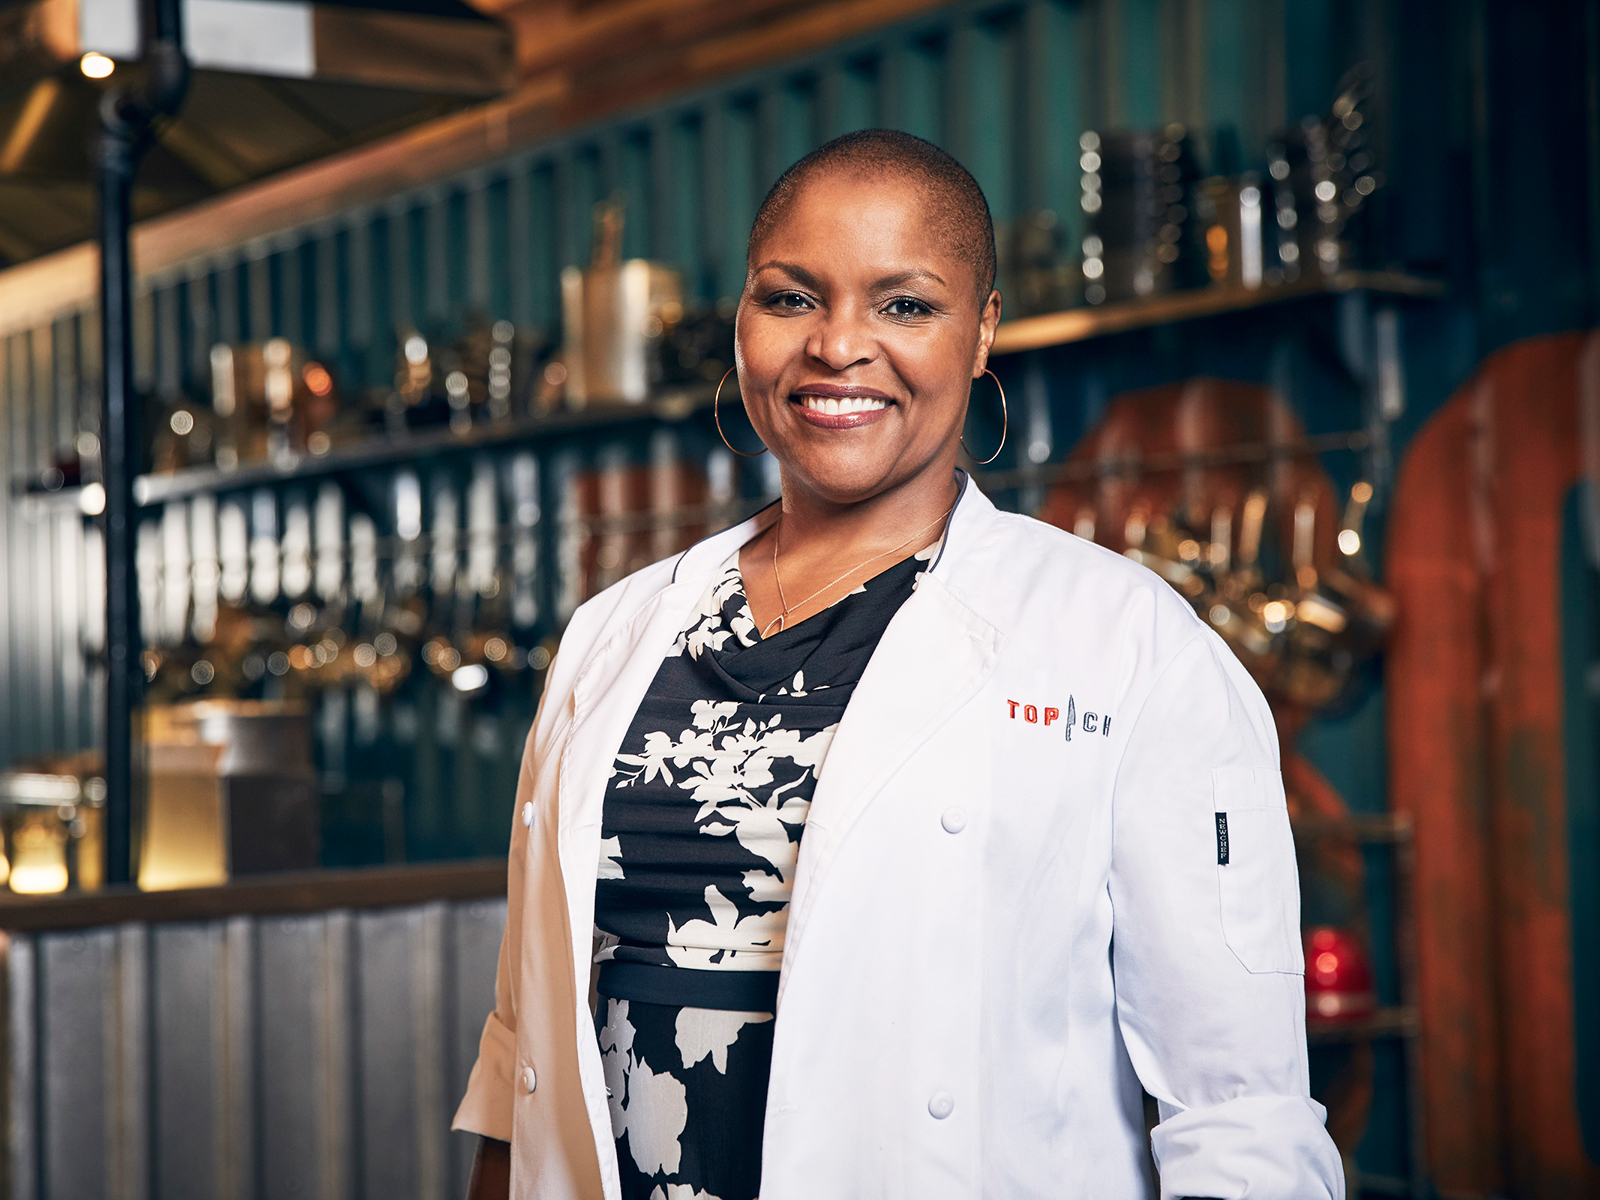 'Top Chef's' Tanya Holland on That Tense Judges Table